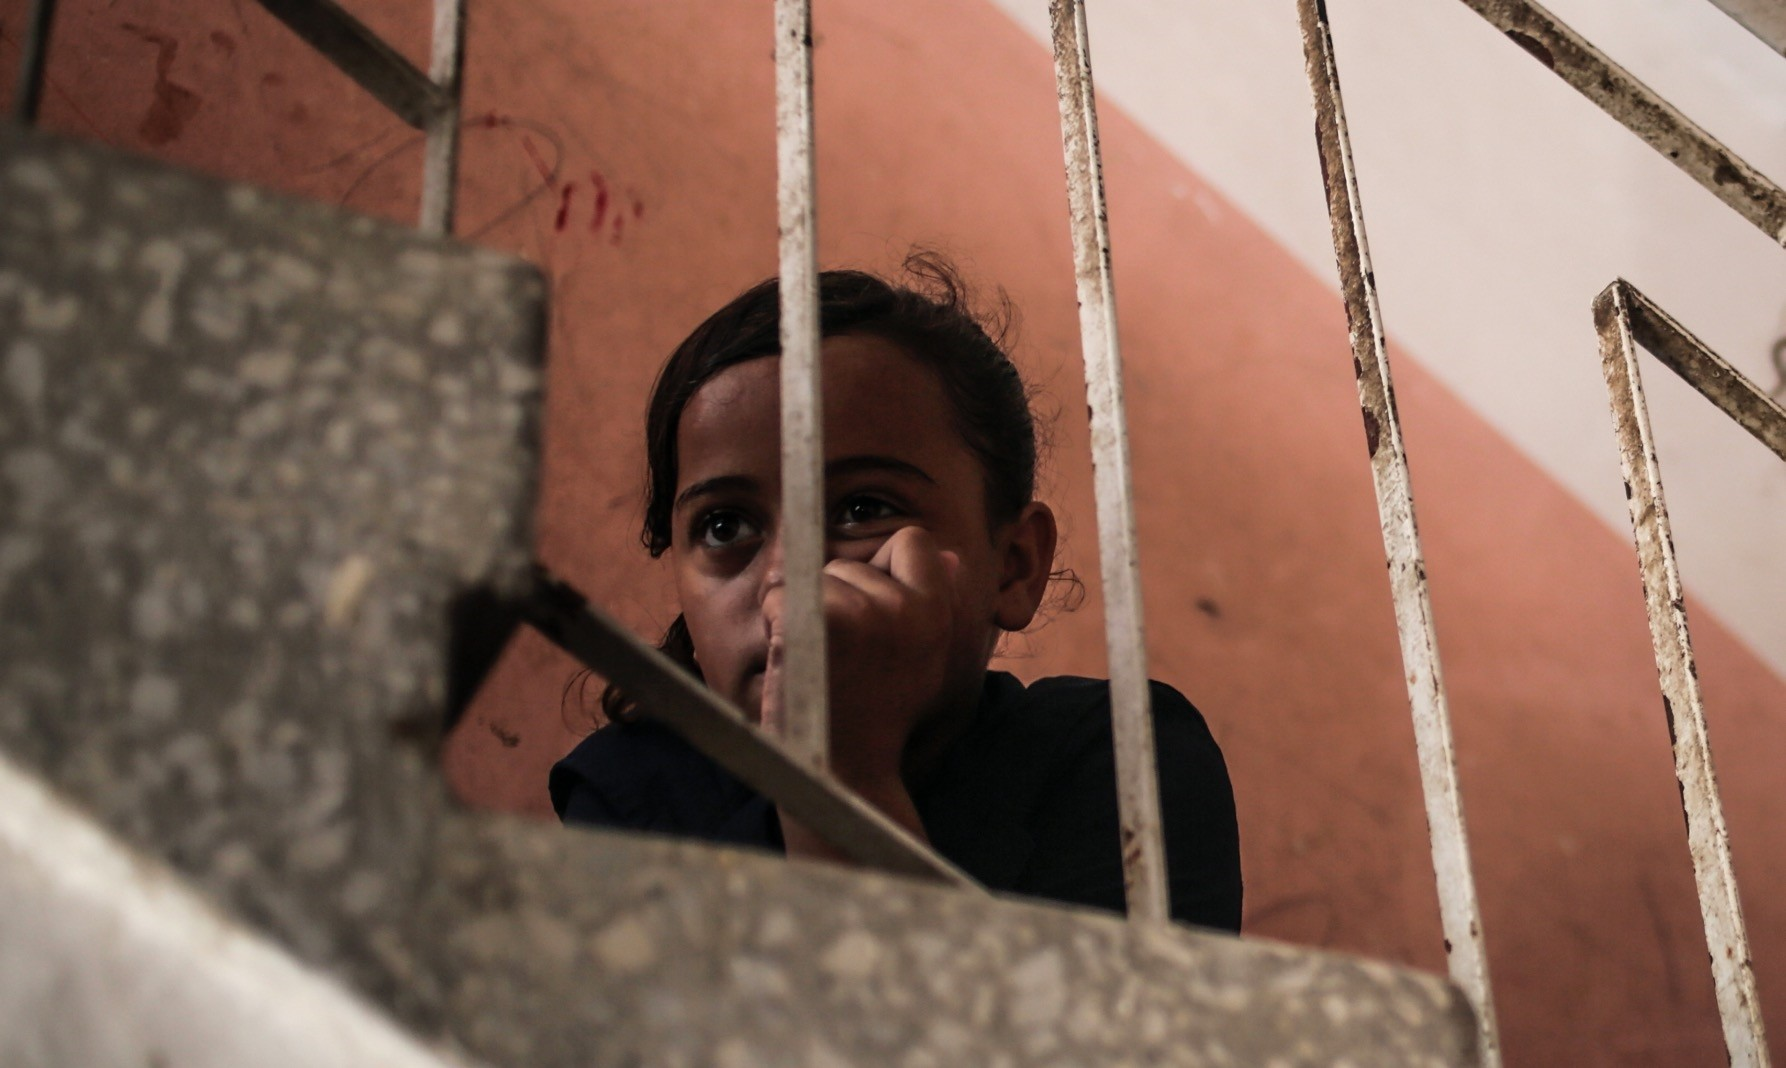 Deprived of basic needs, Palestiniansu2019 daily lives have been completely destroyed under a tightened Israeli blockade.